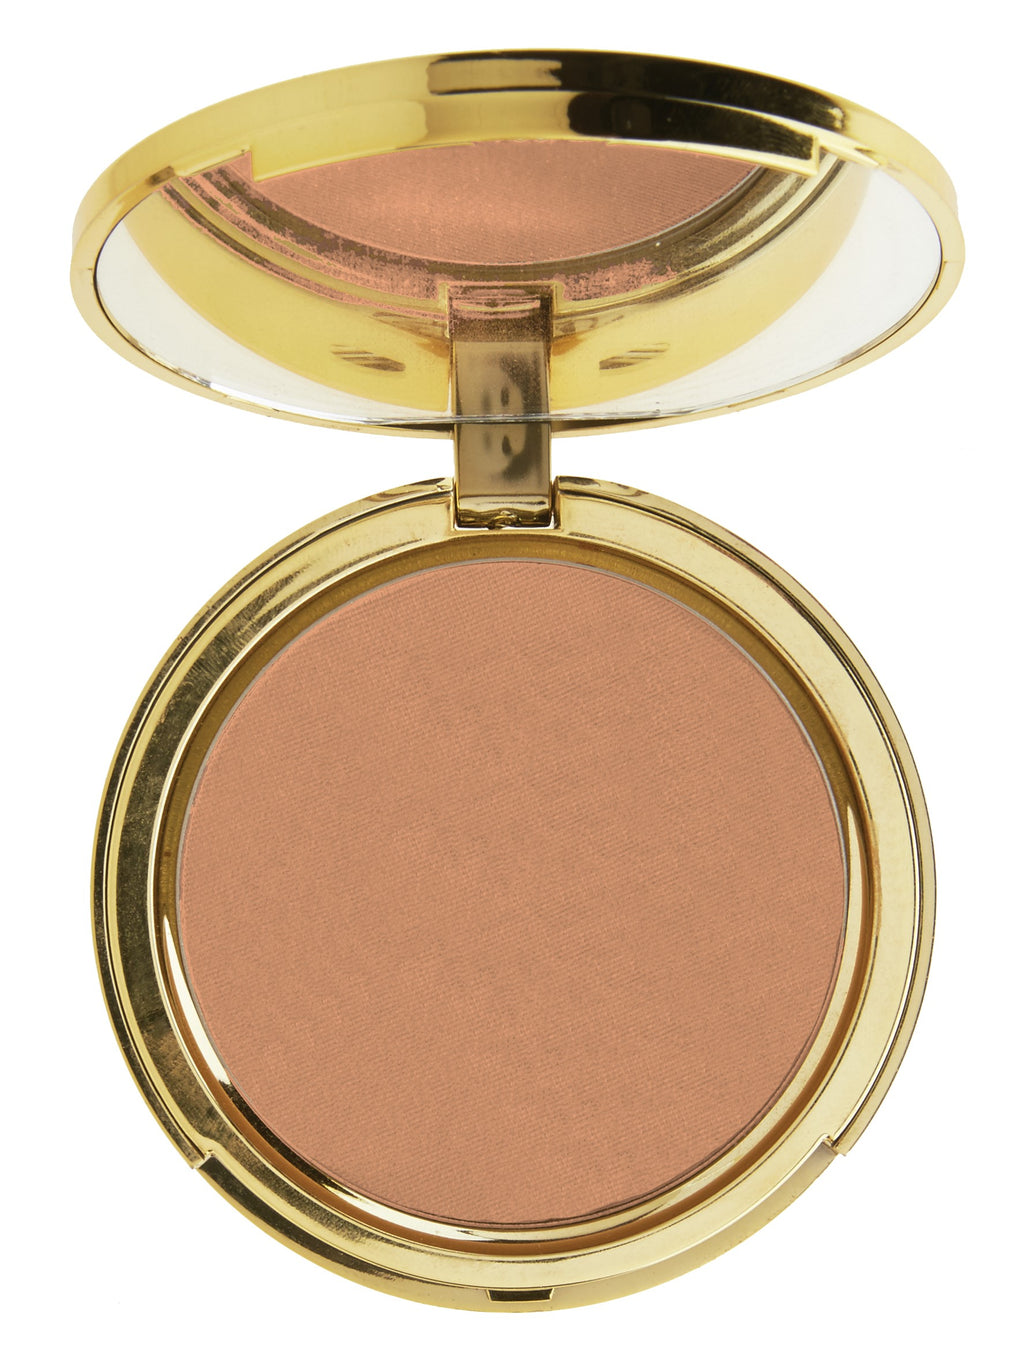 Winky Lux - Coffee Bronzer